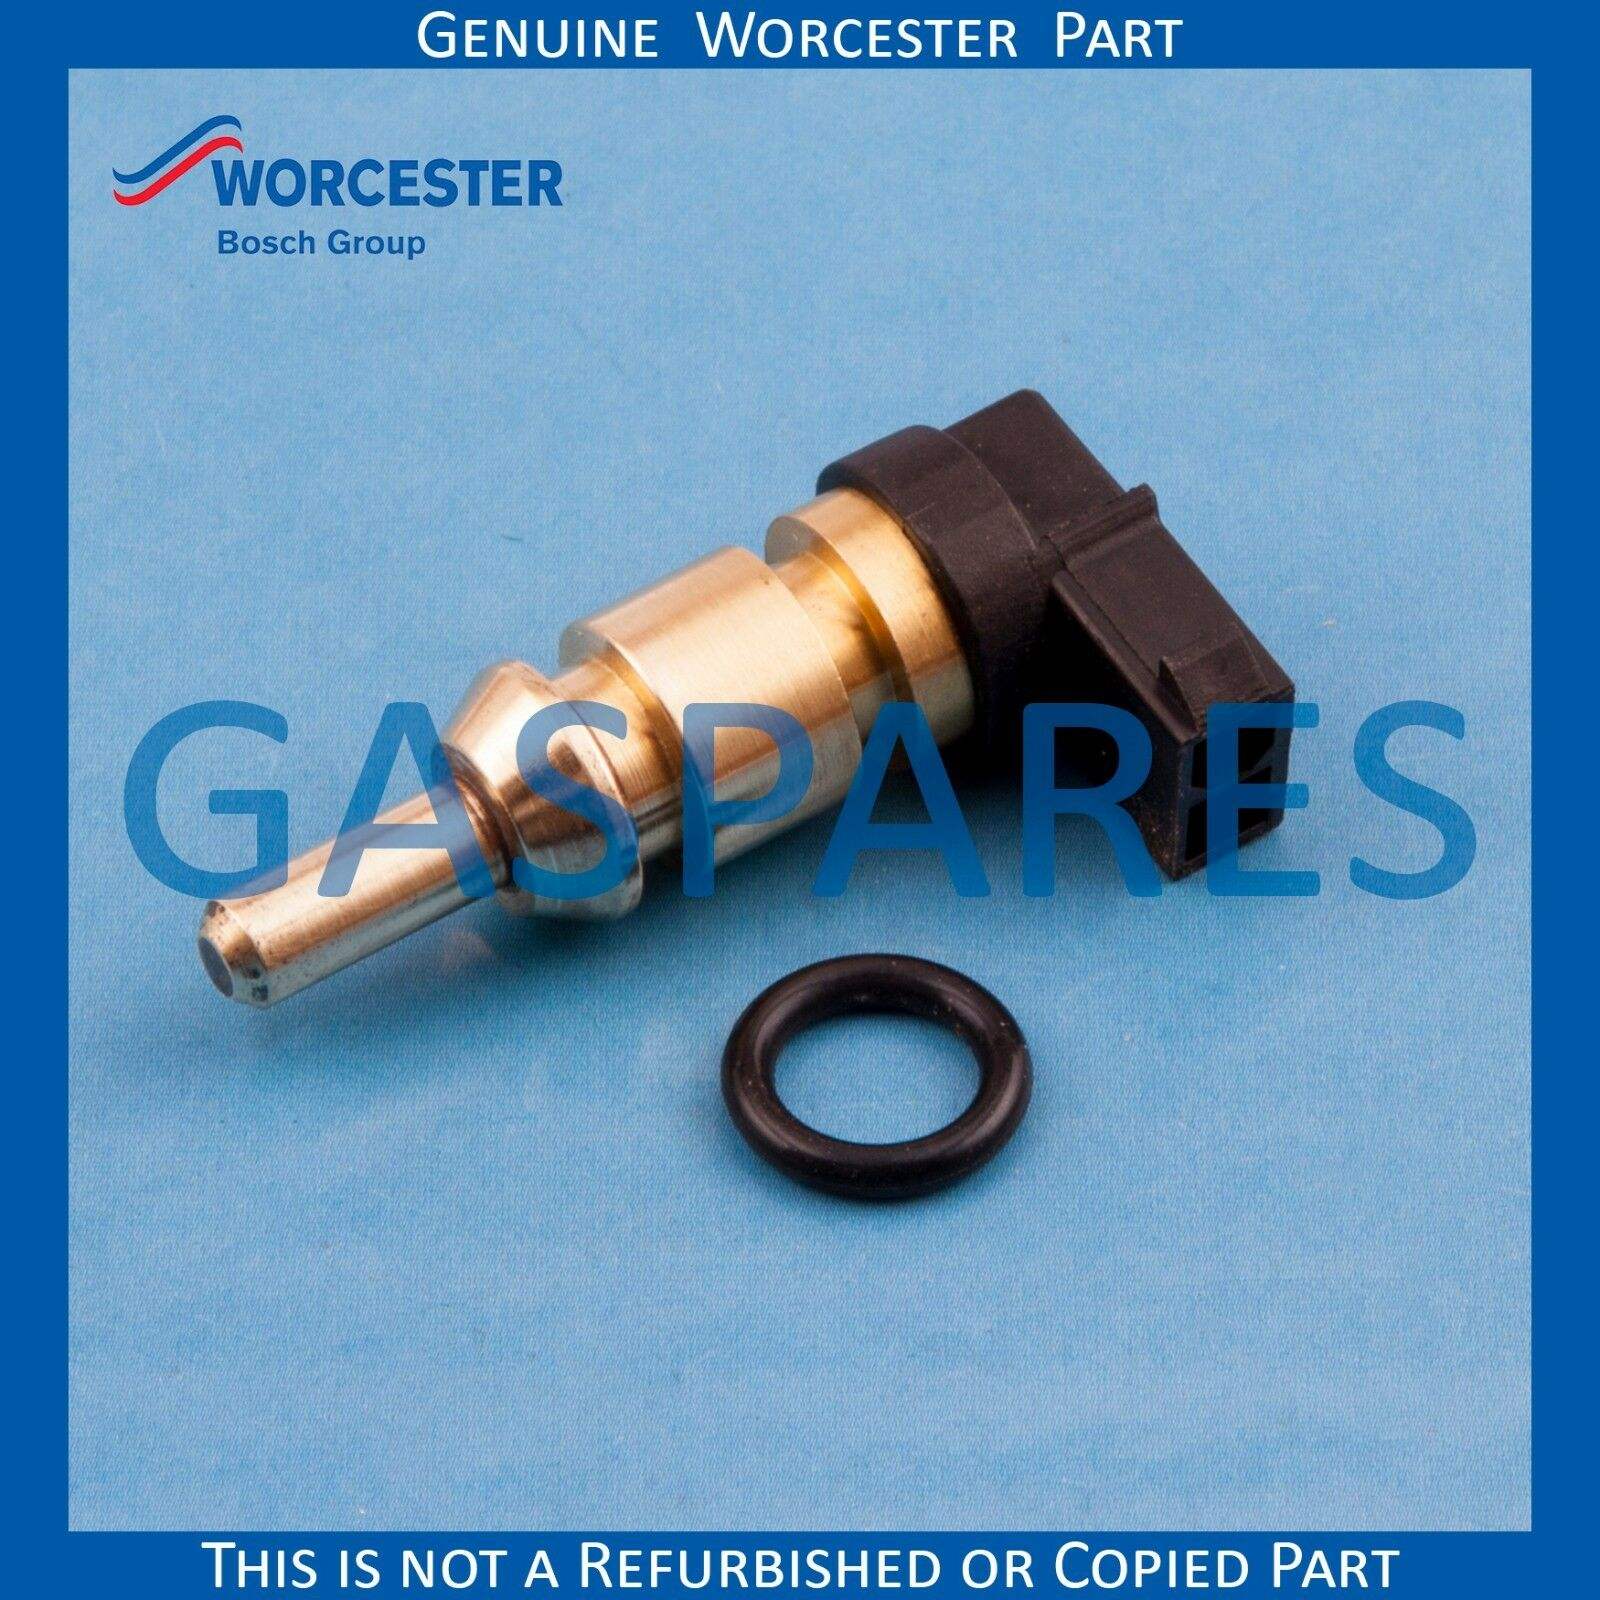 WORCESTER GAS SPARE Sensor NTC Right Angled - Part No 87186843230 ...